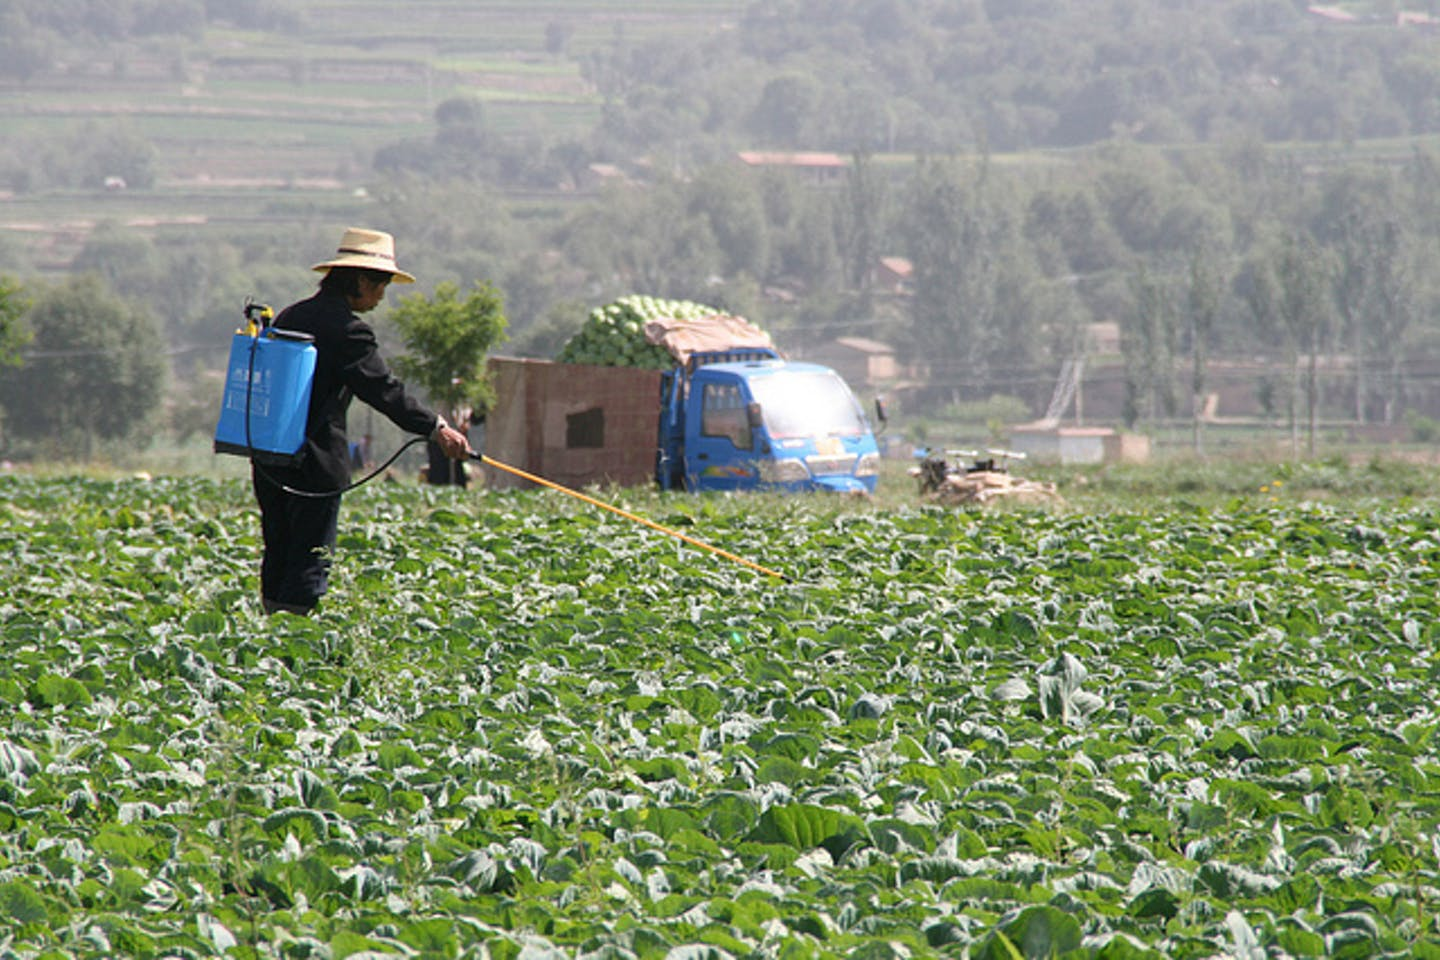 farmer sprays pesticide